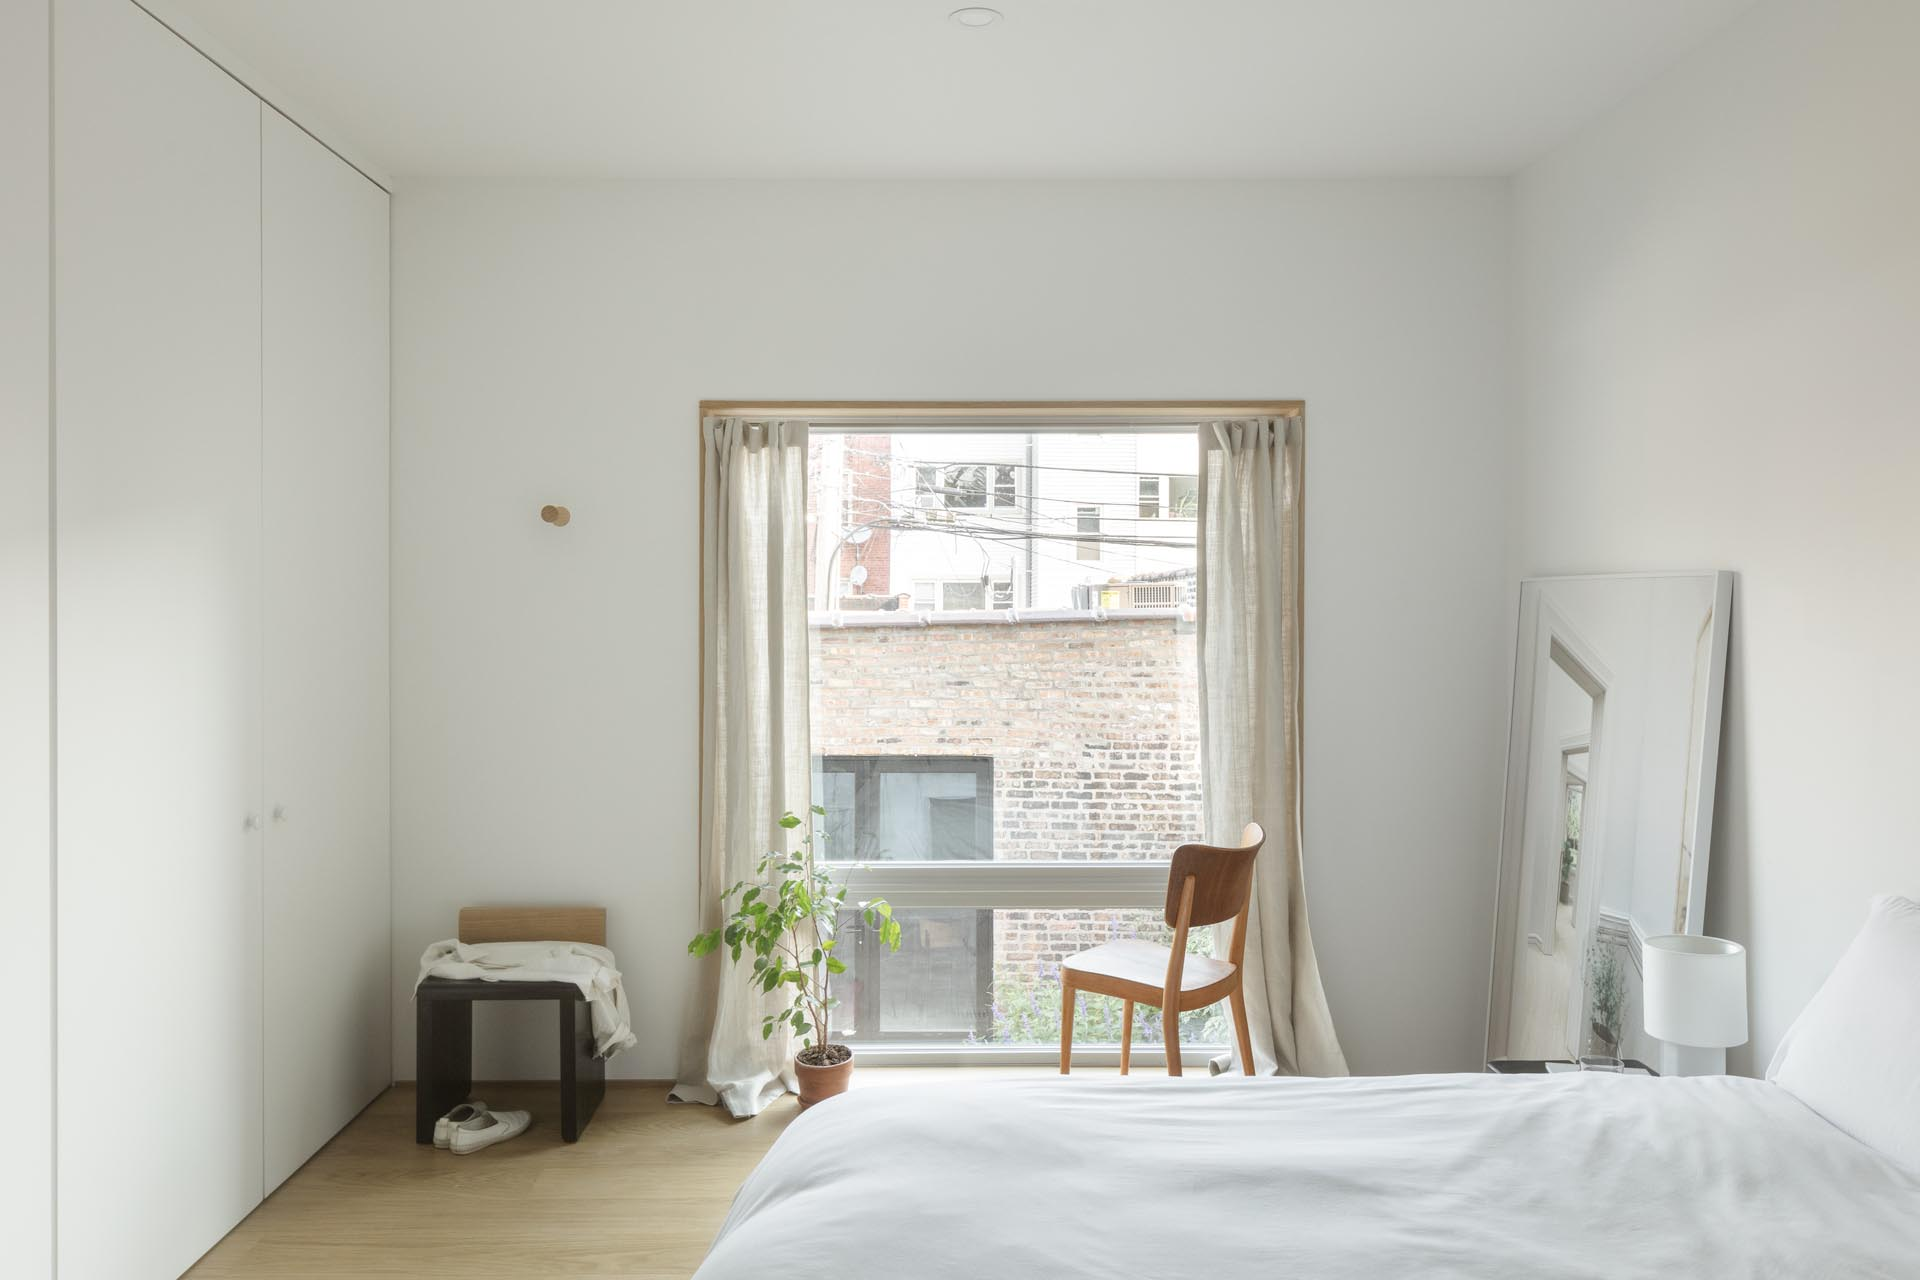 In this bedroom, minimal furnishings match the white interior, while the wood window frame complements the wood flooring.